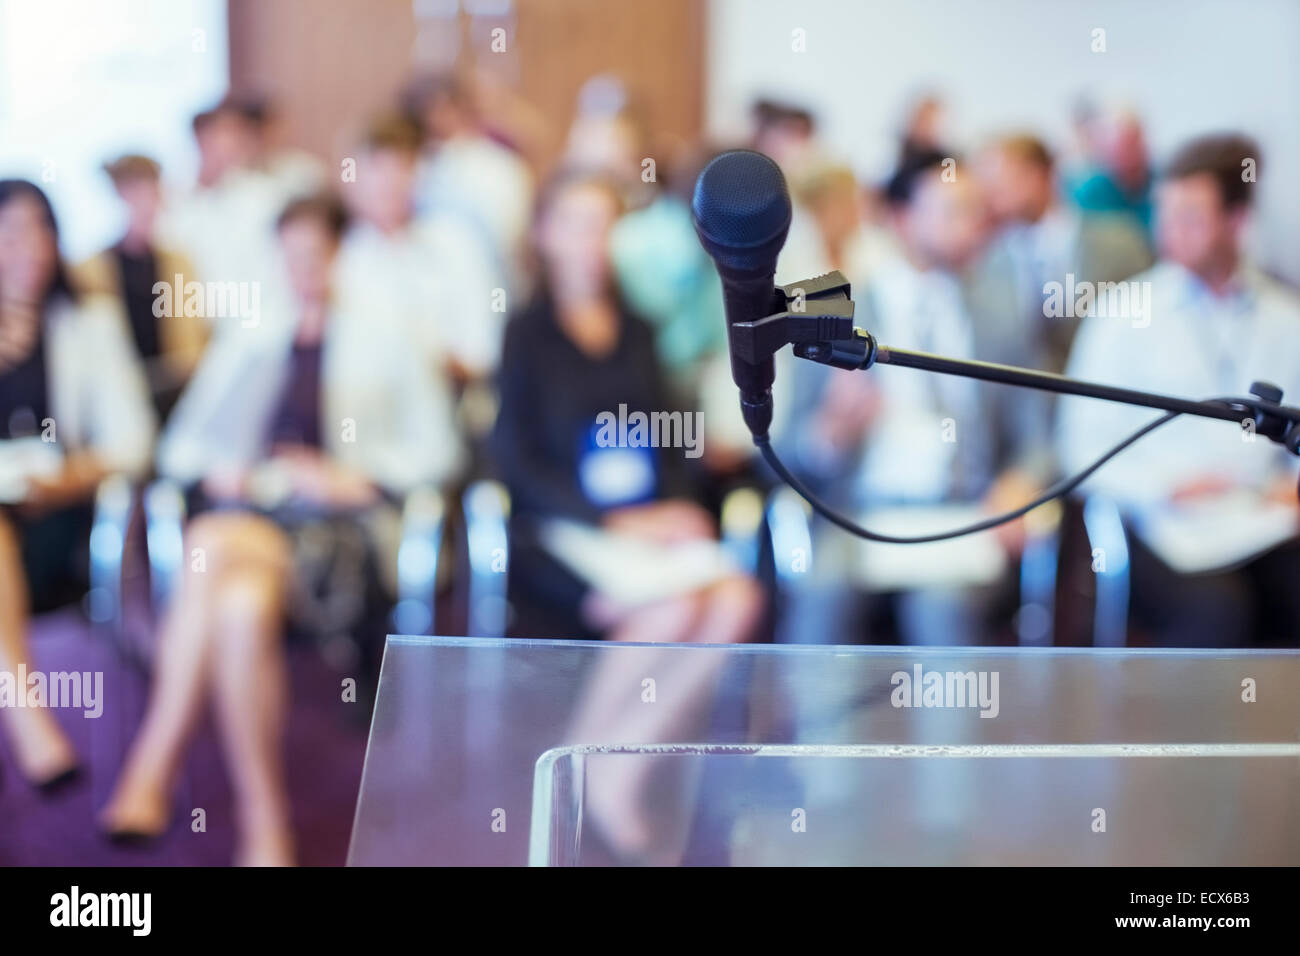 Close-up of microphone and transparent lectern with audience seen in blurred background - Stock Image